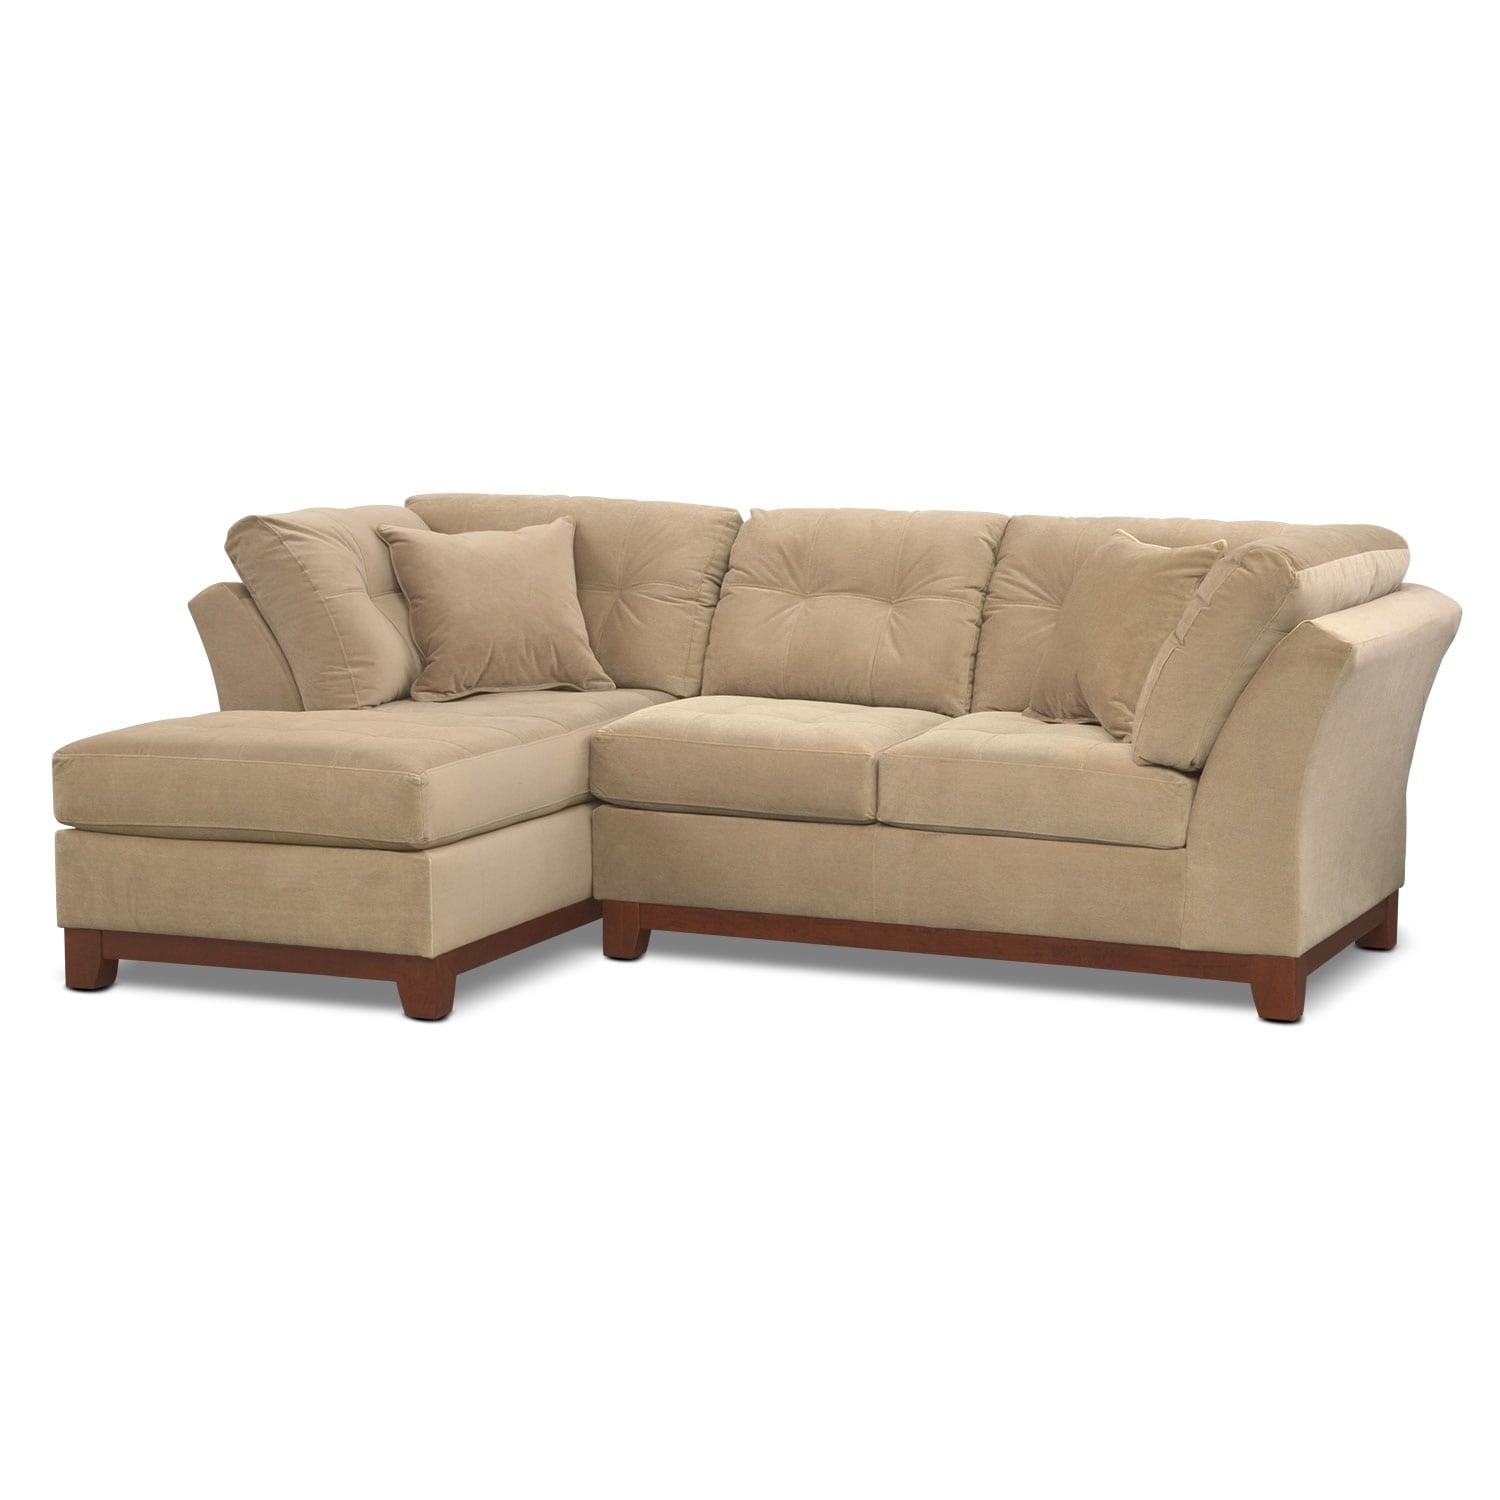 Living Room Furniture - Solace 2-Piece Left-Facing Chaise Sectional - Cocoa